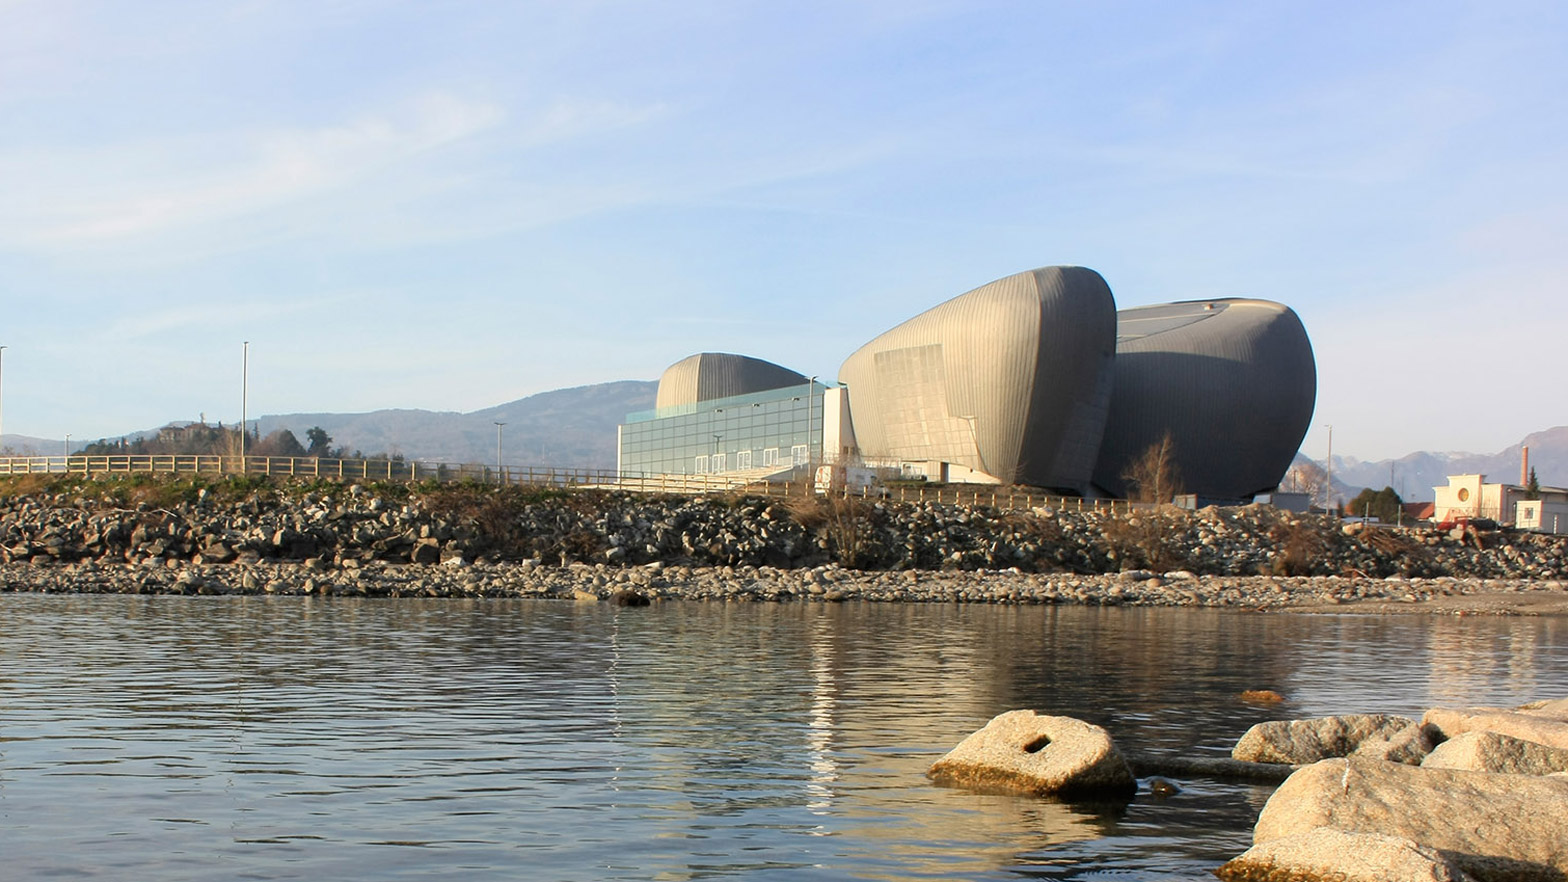 Rock Shaped Lakeside Theatre by Bargone Associati